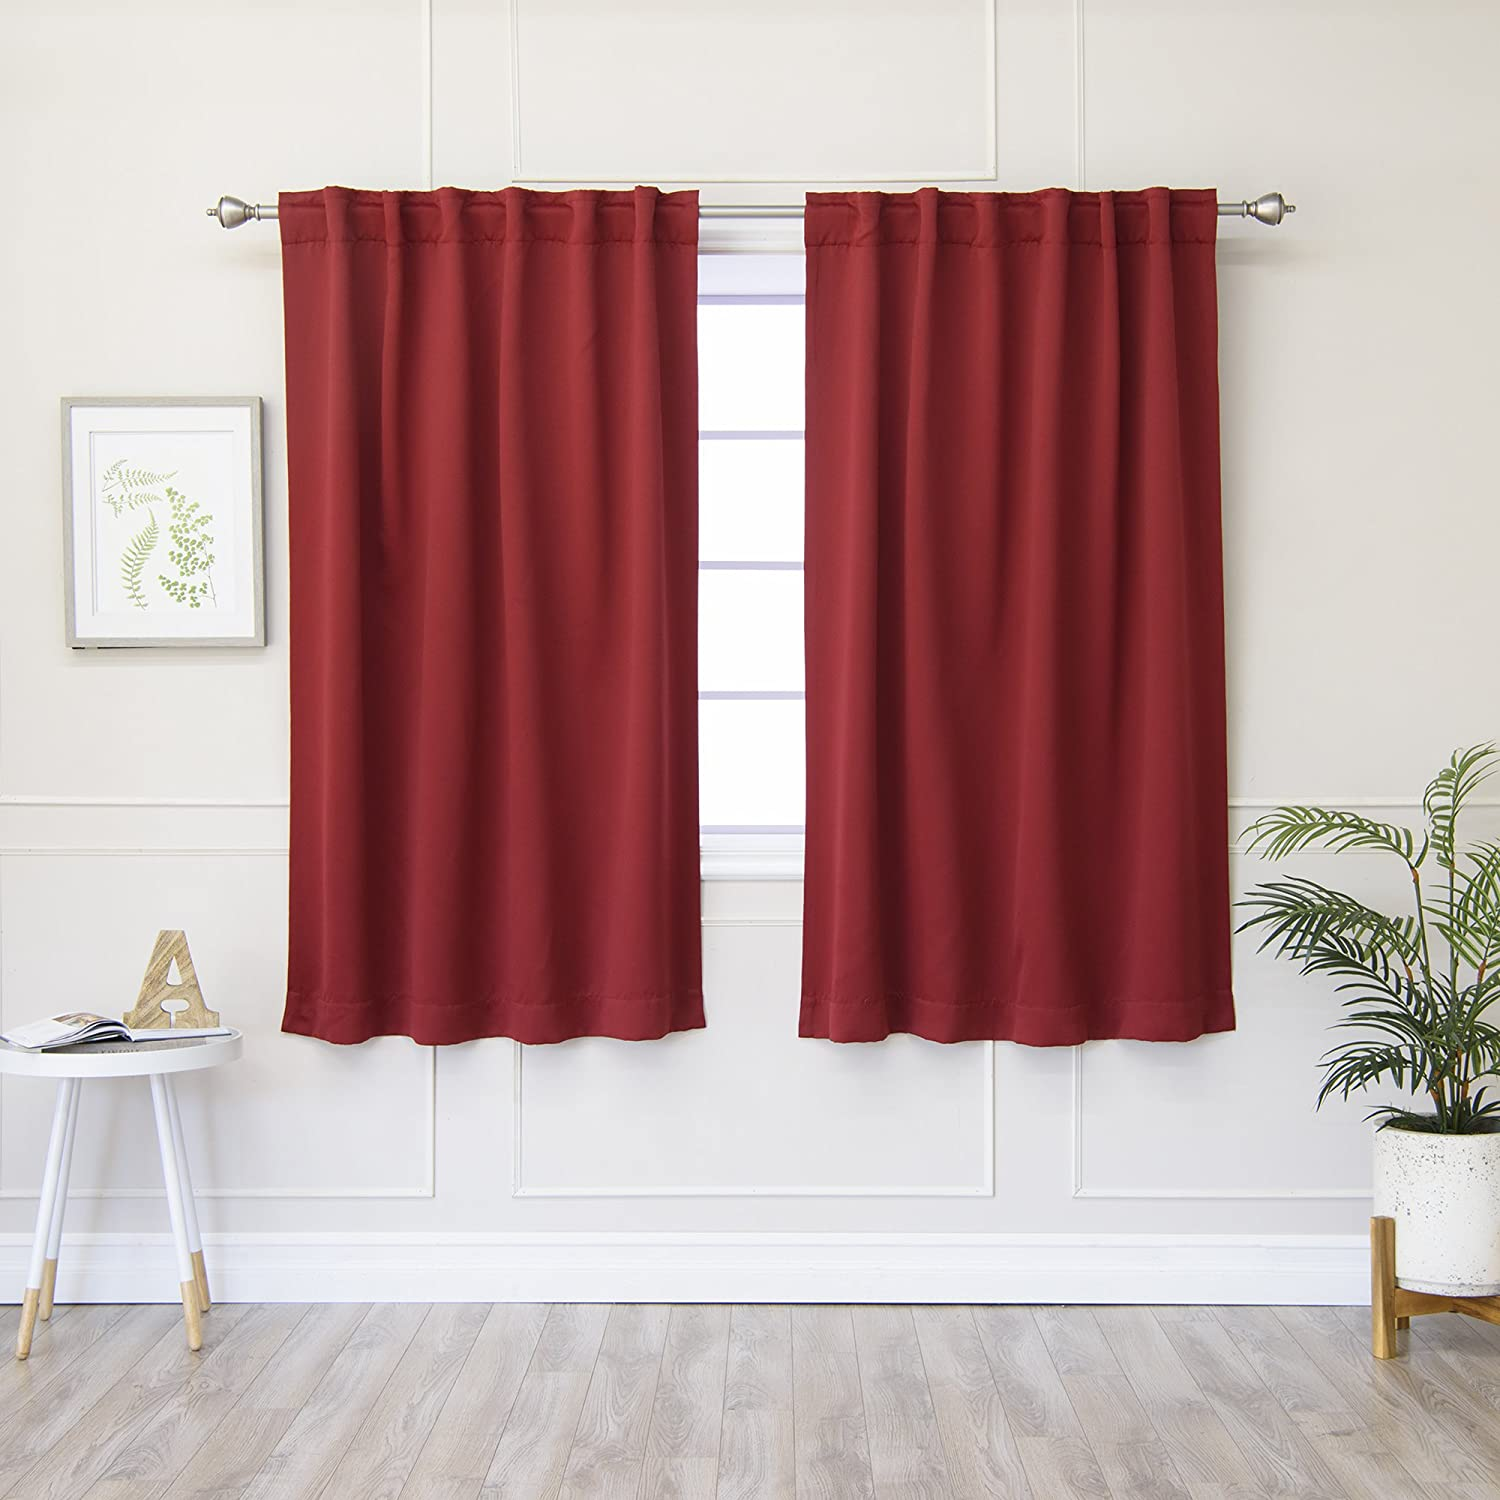 Deconovo Home Fashion Curtains Sale Ease Bedding With Style